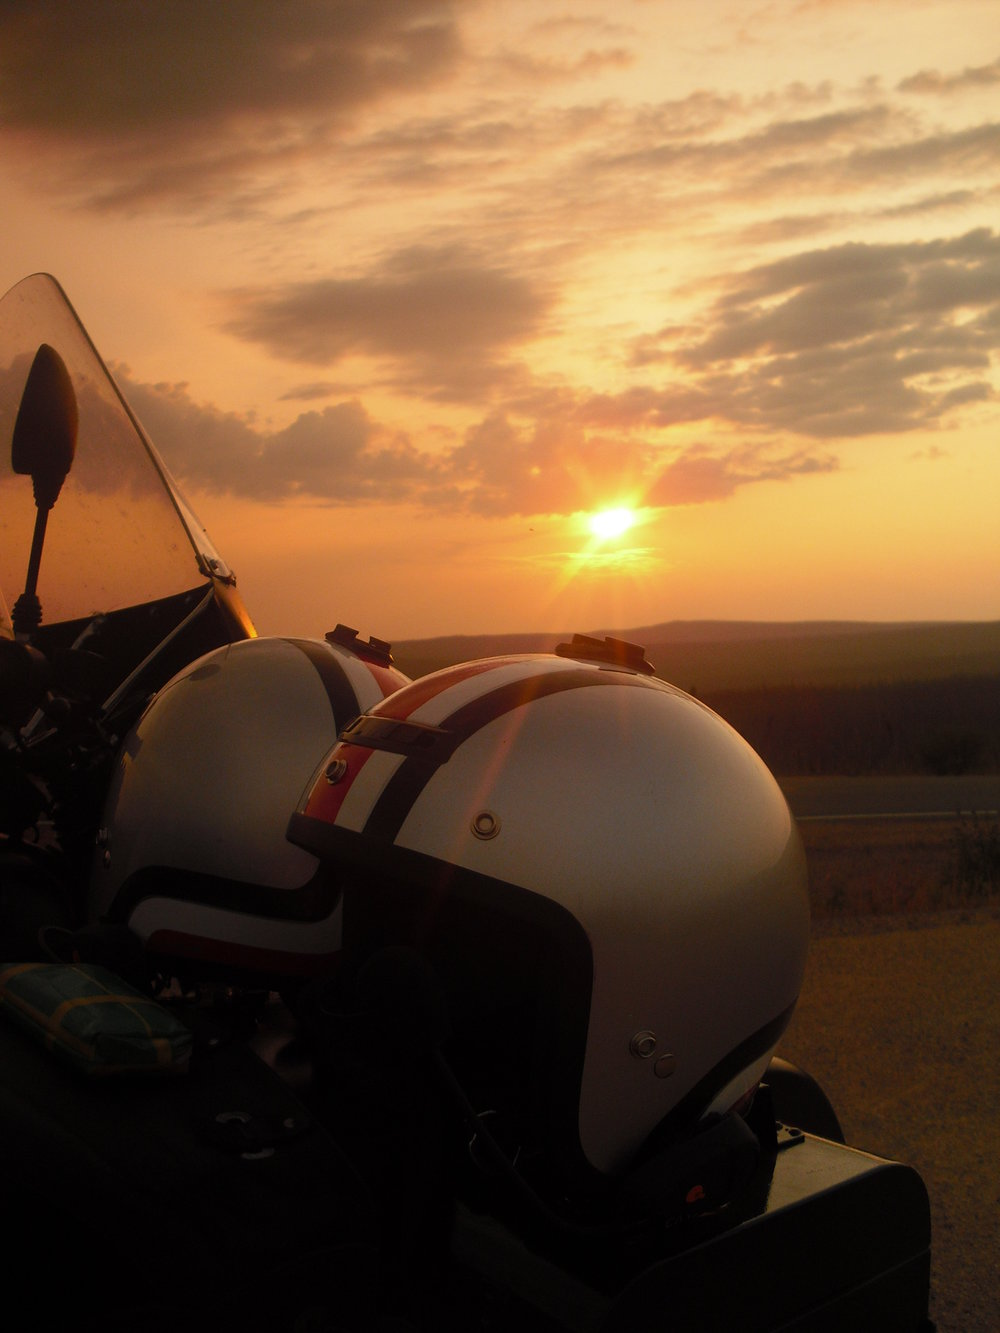 02b sunset helmets.JPG